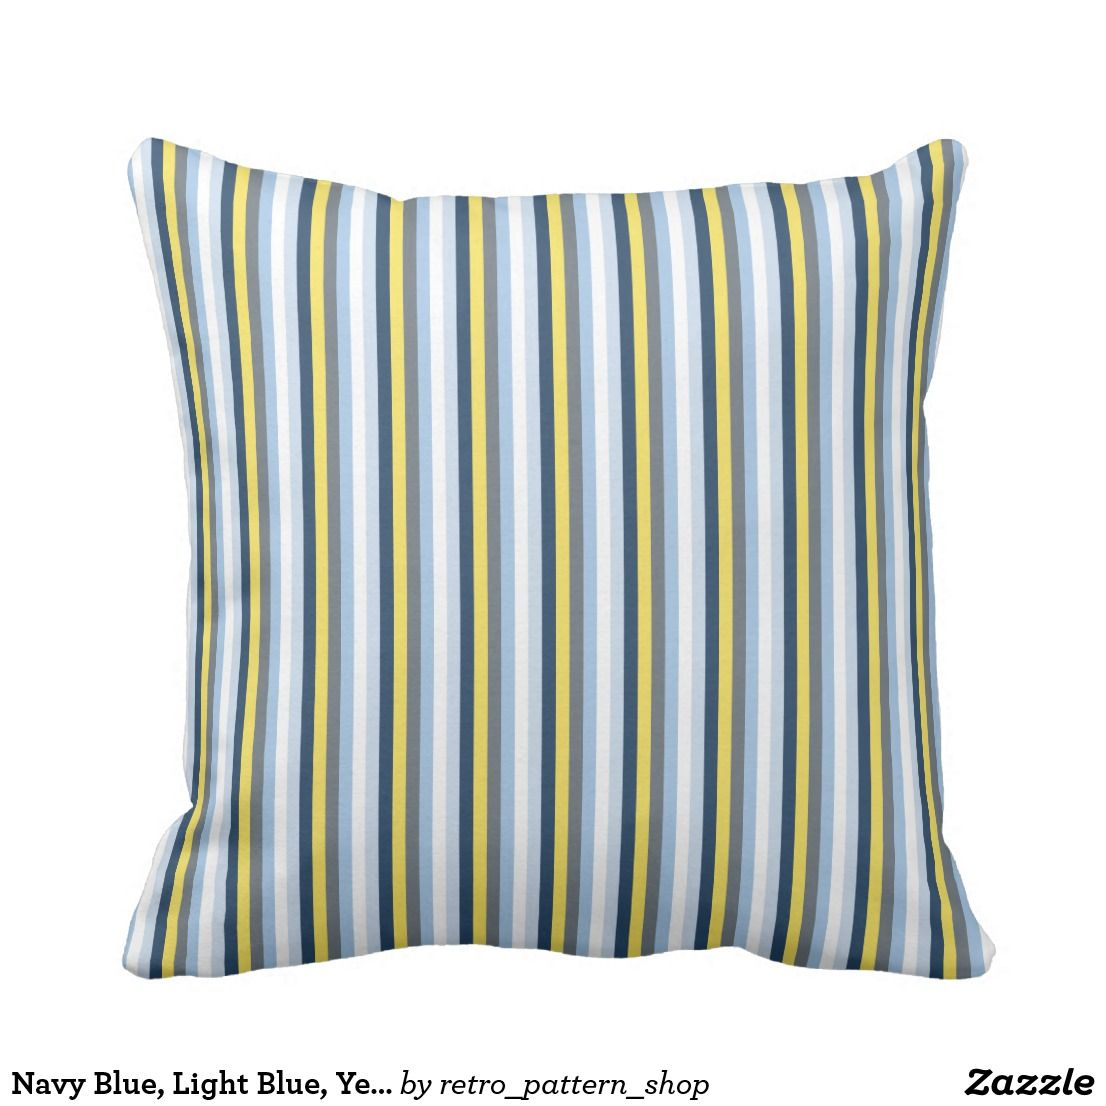 Navy Blue Light Blue Yellow And Gray Stripes Throw Pillow Zazzle Com Stripe Throw Pillow Throw Pillows